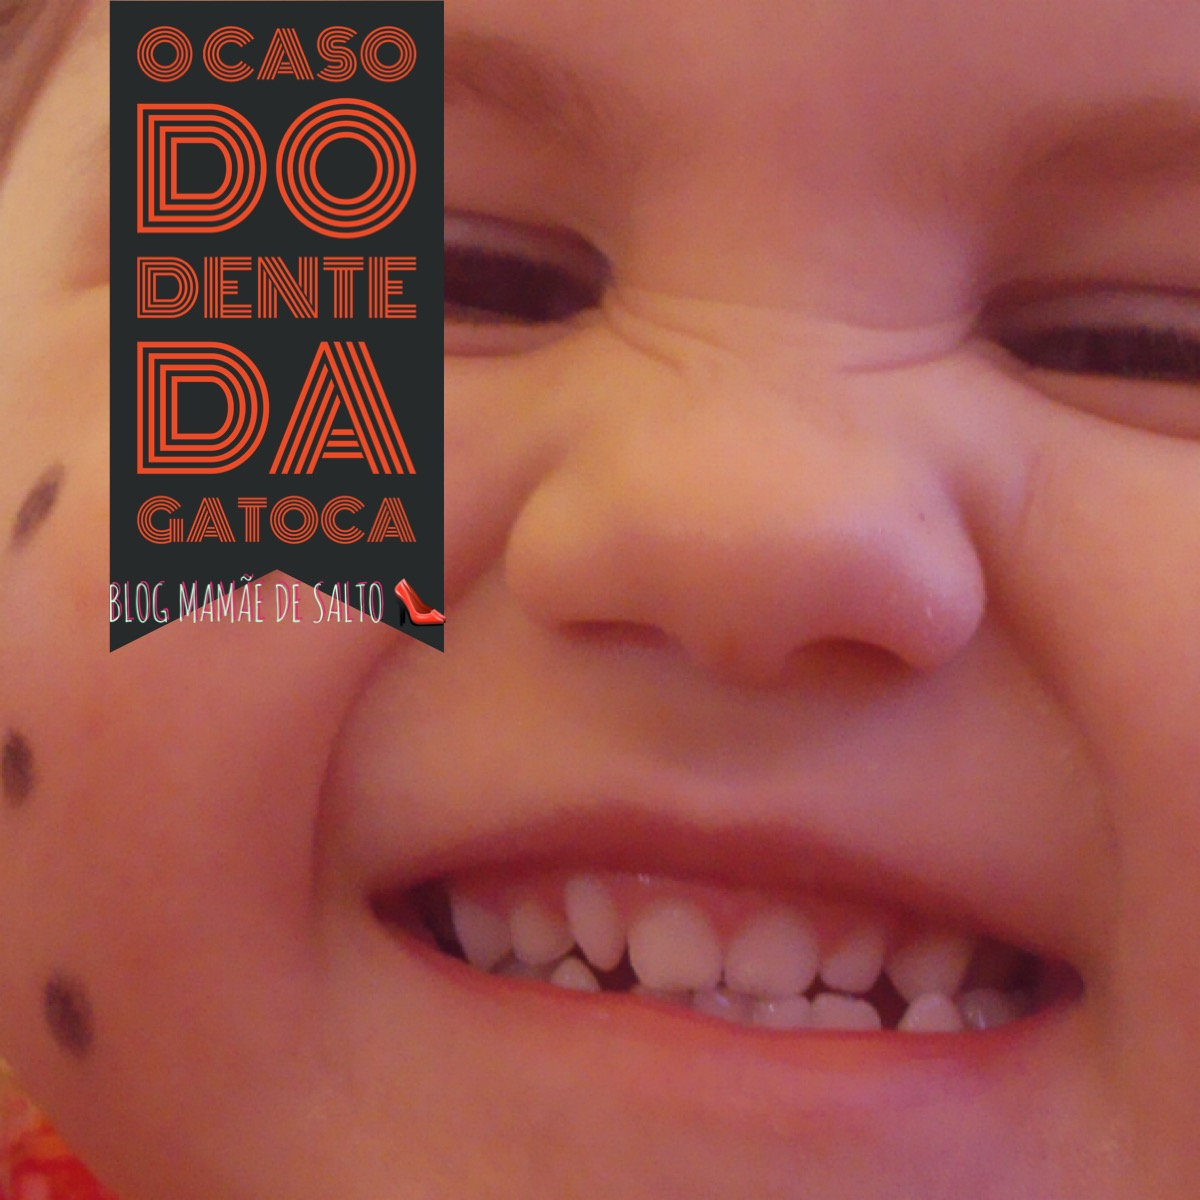 O Caso do Dente da Gatoca ... blog Mamãe de Salto